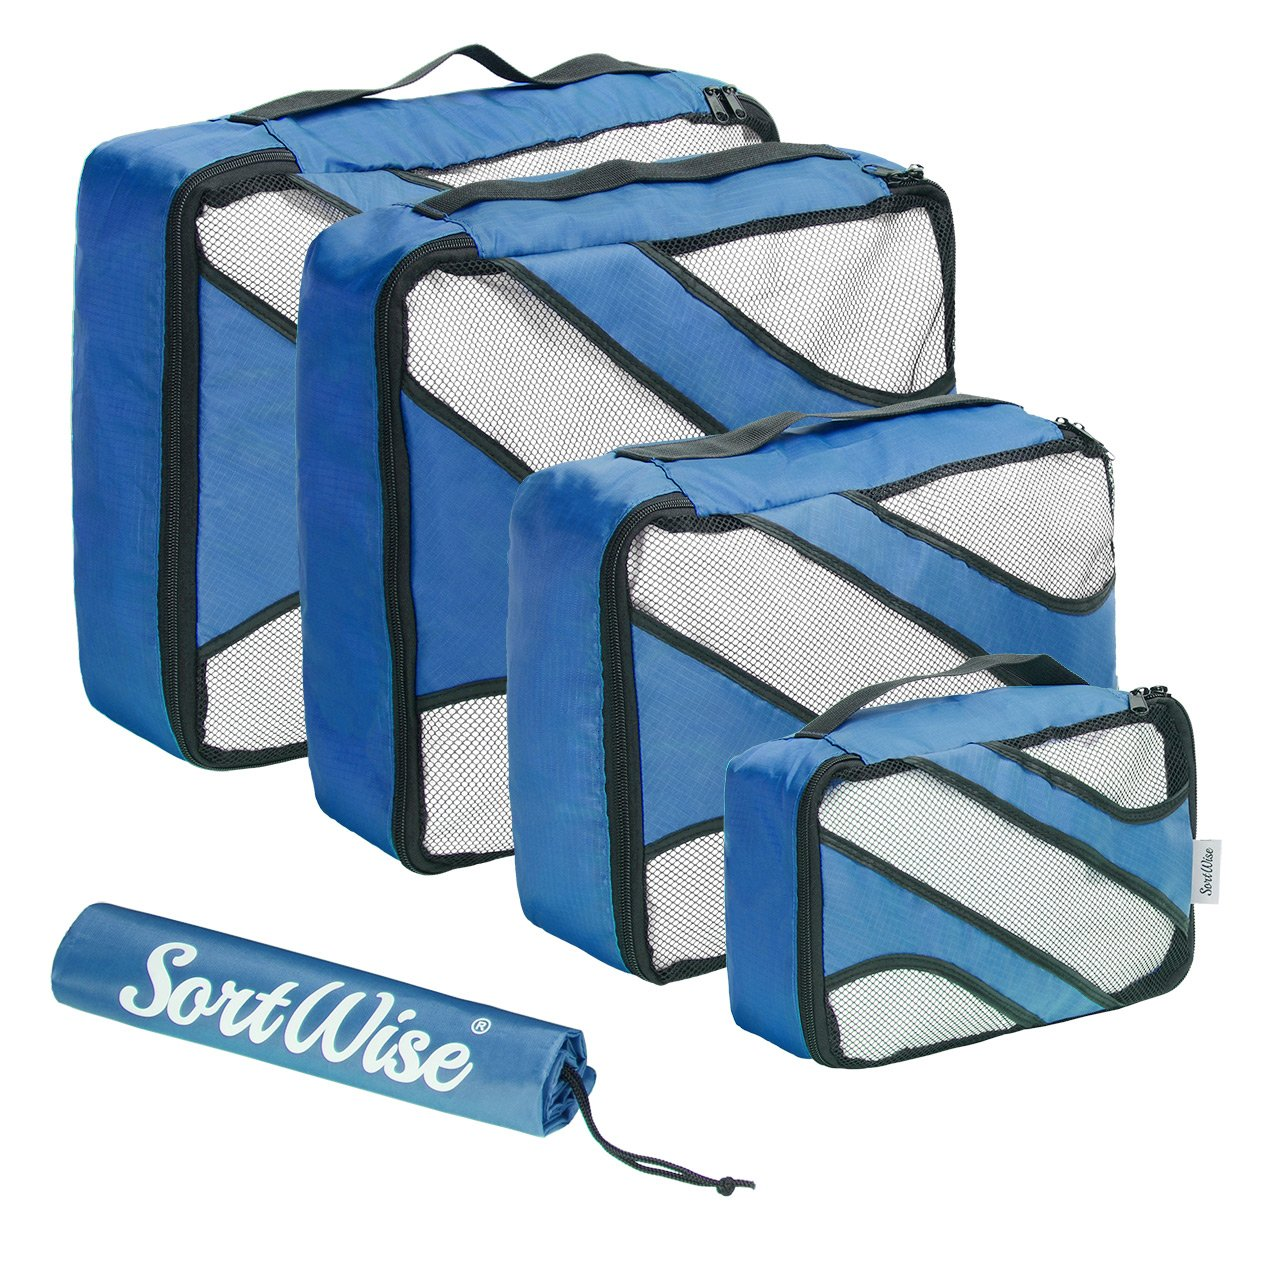 SortWise ® 4 Set Packing Cubes,Travel Luggage Packing Organizers, Packing Cubes Value Set, Lightweight (Blue)